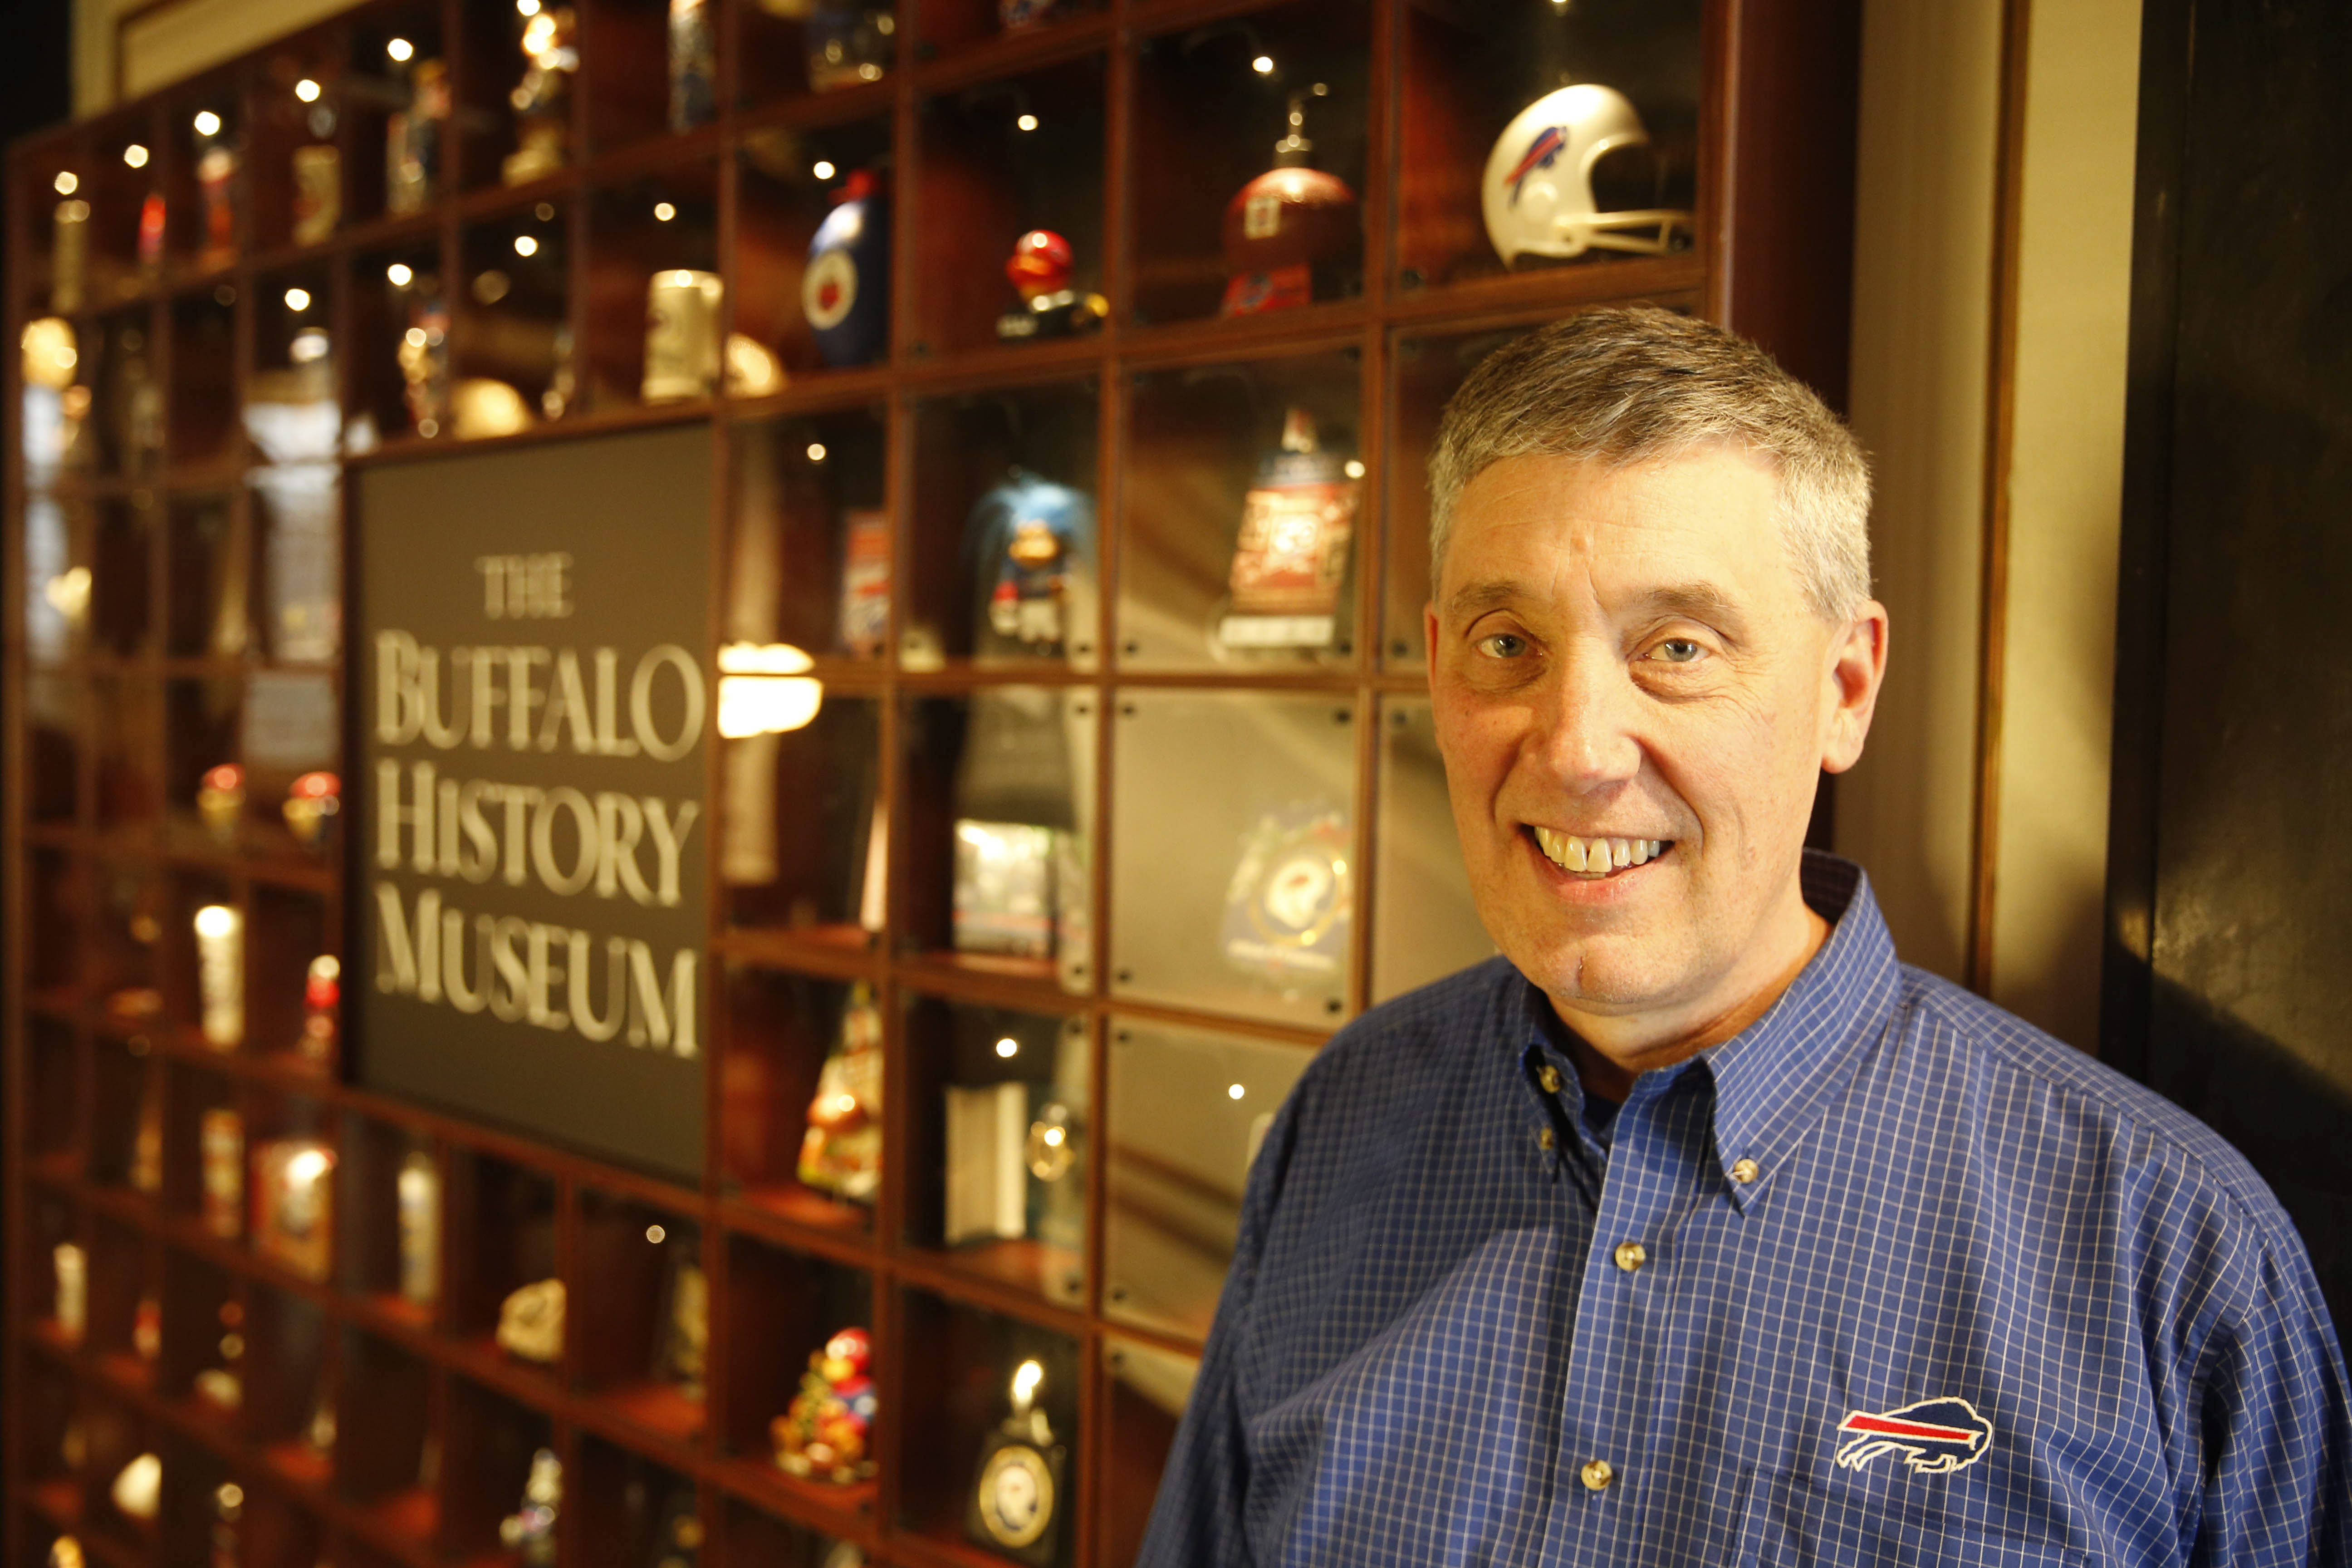 Bills fan and super collector Greg Tranter with some of his collection at the Buffalo History Museum. (Derek Gee/Buffalo News)